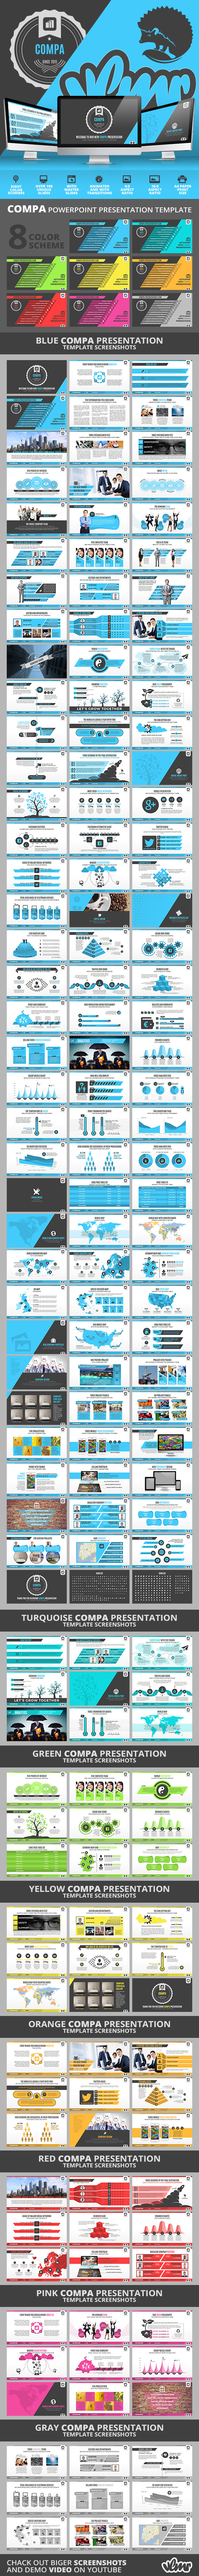 GraphicRiver Compa PowerPoint Presentation Template 11378342